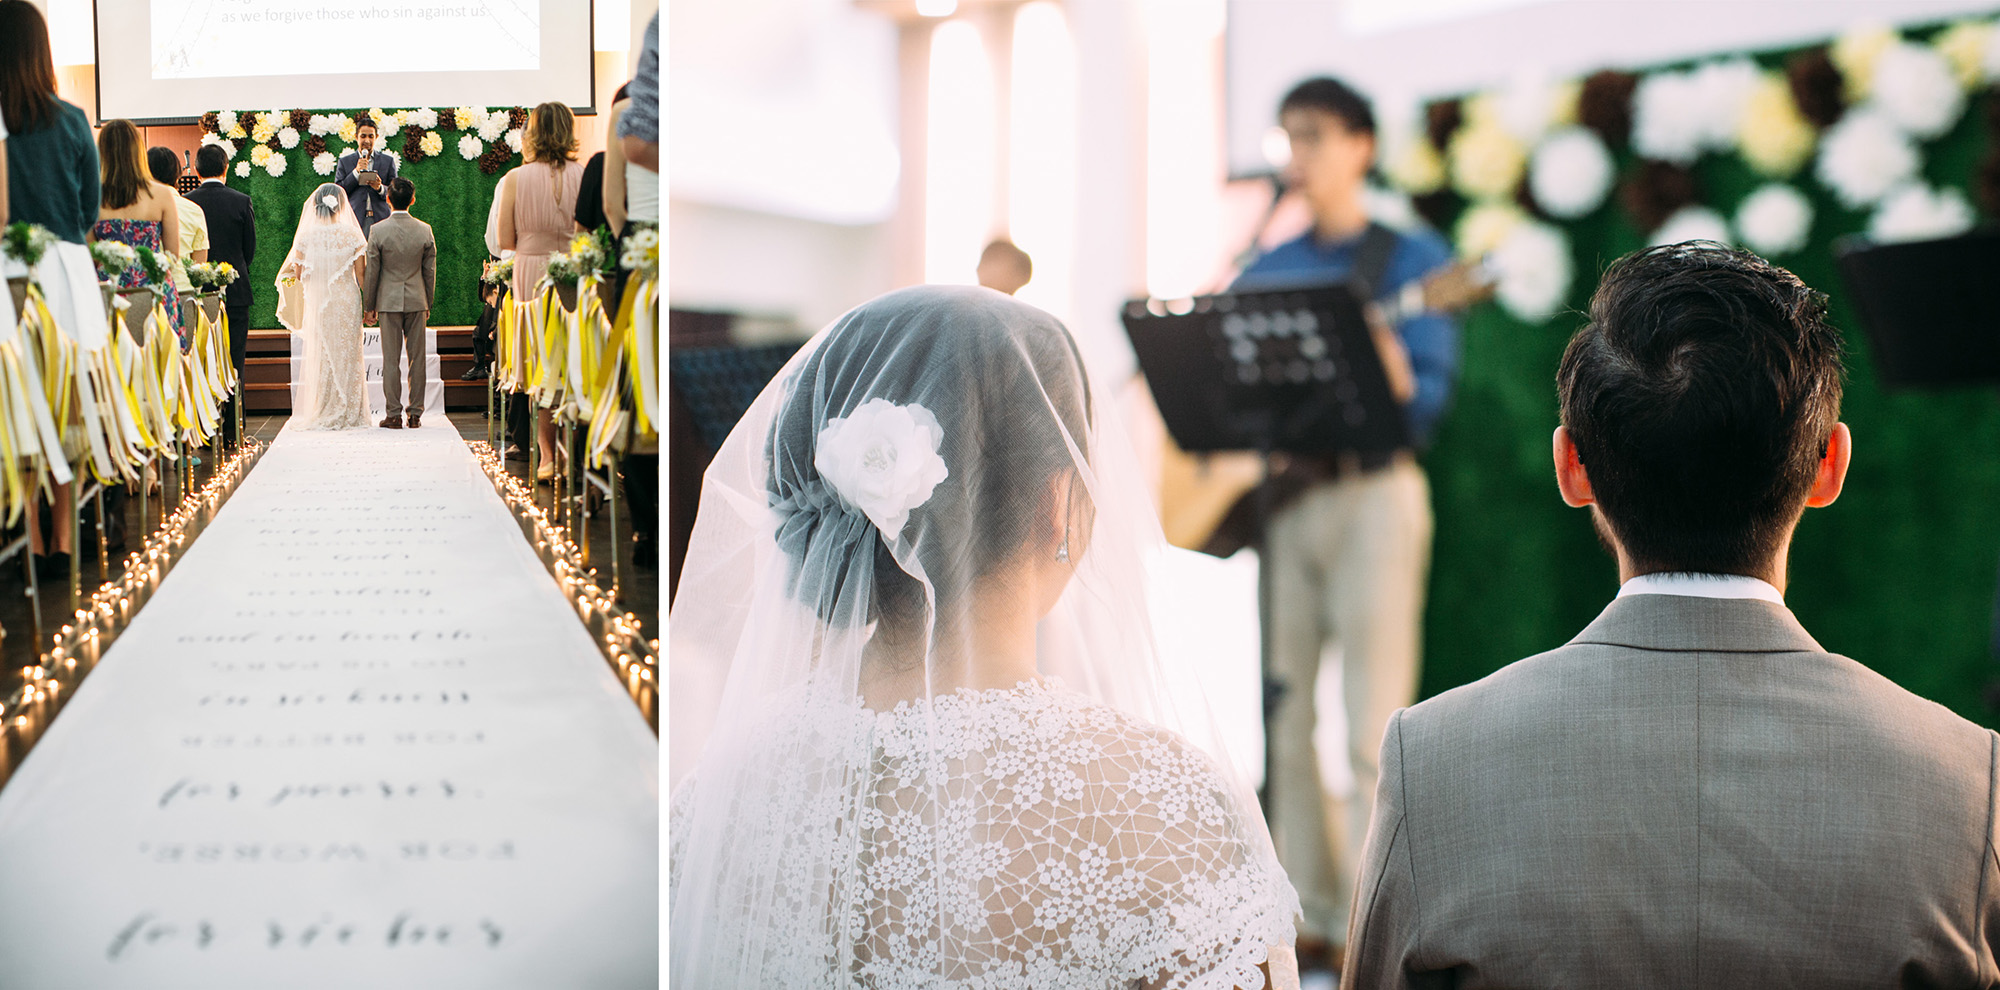 48-hellojanelee-sam grace-malaysia-wedding-day